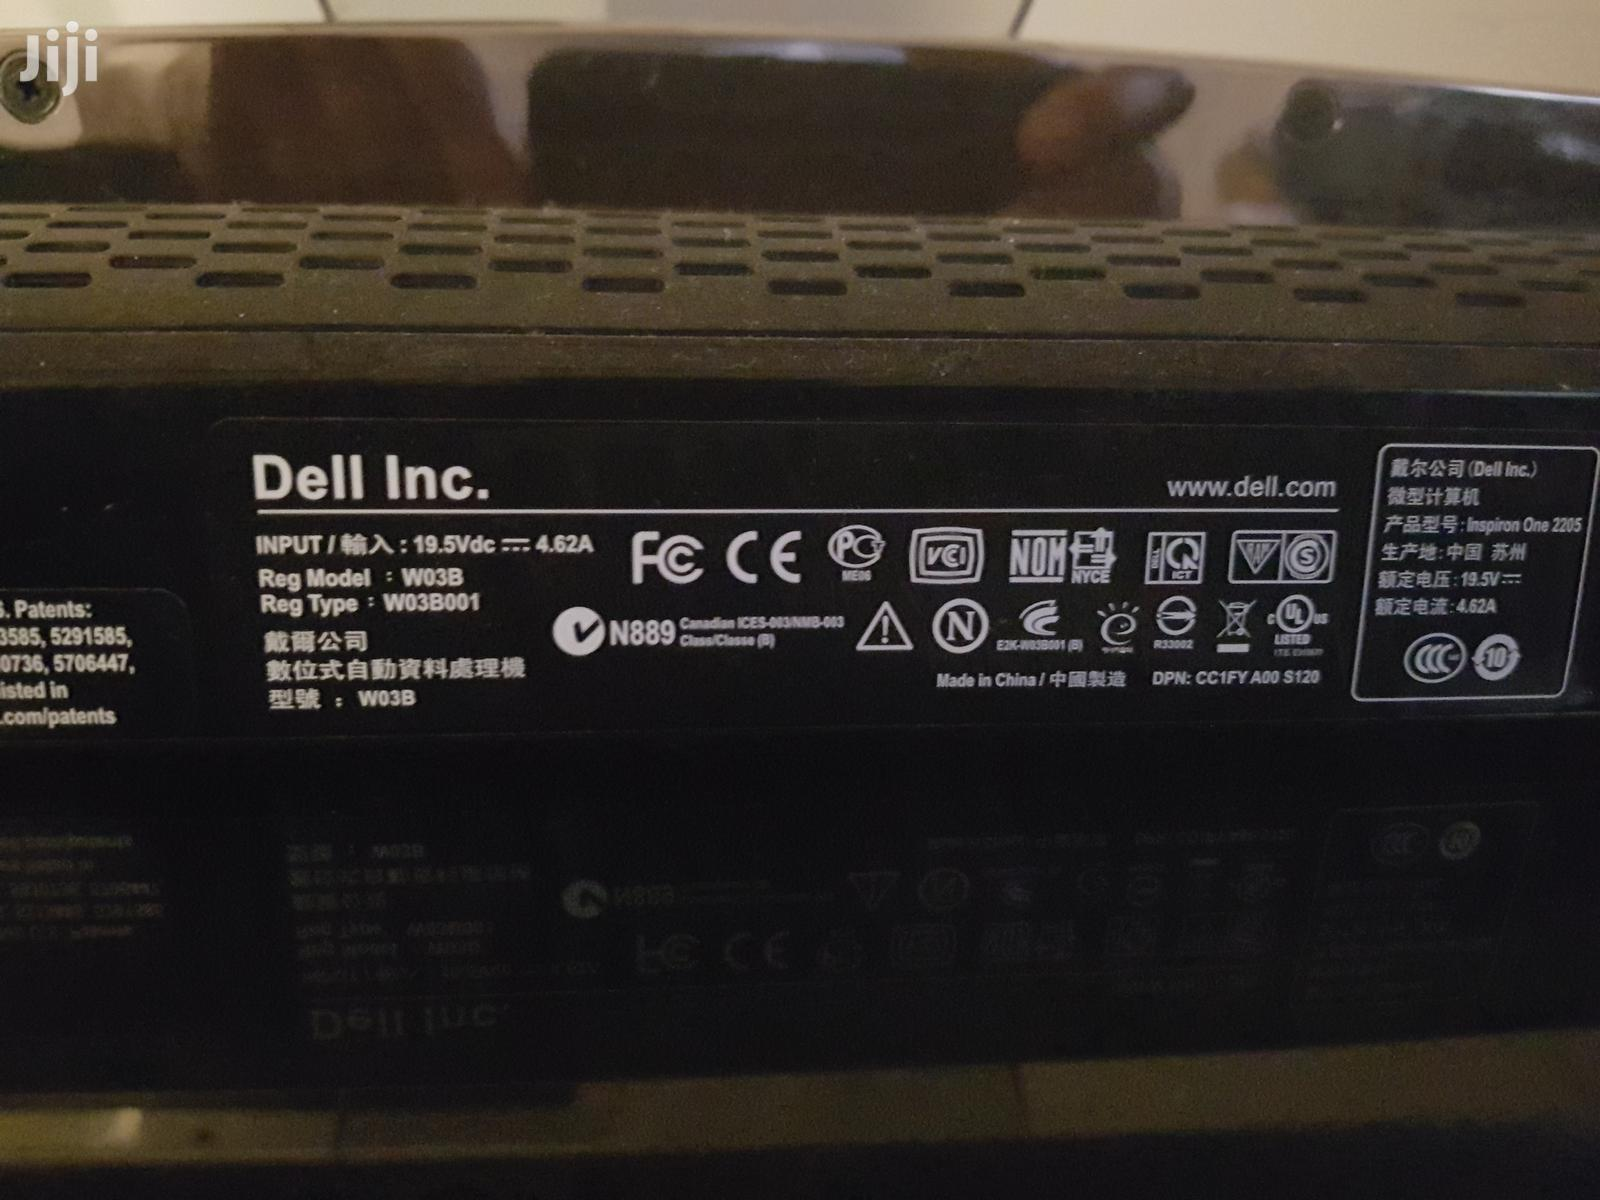 Archive: Desktop Computer Dell Inspiron One 2205 4GB Intel Core 2 Duo HDD 500GB